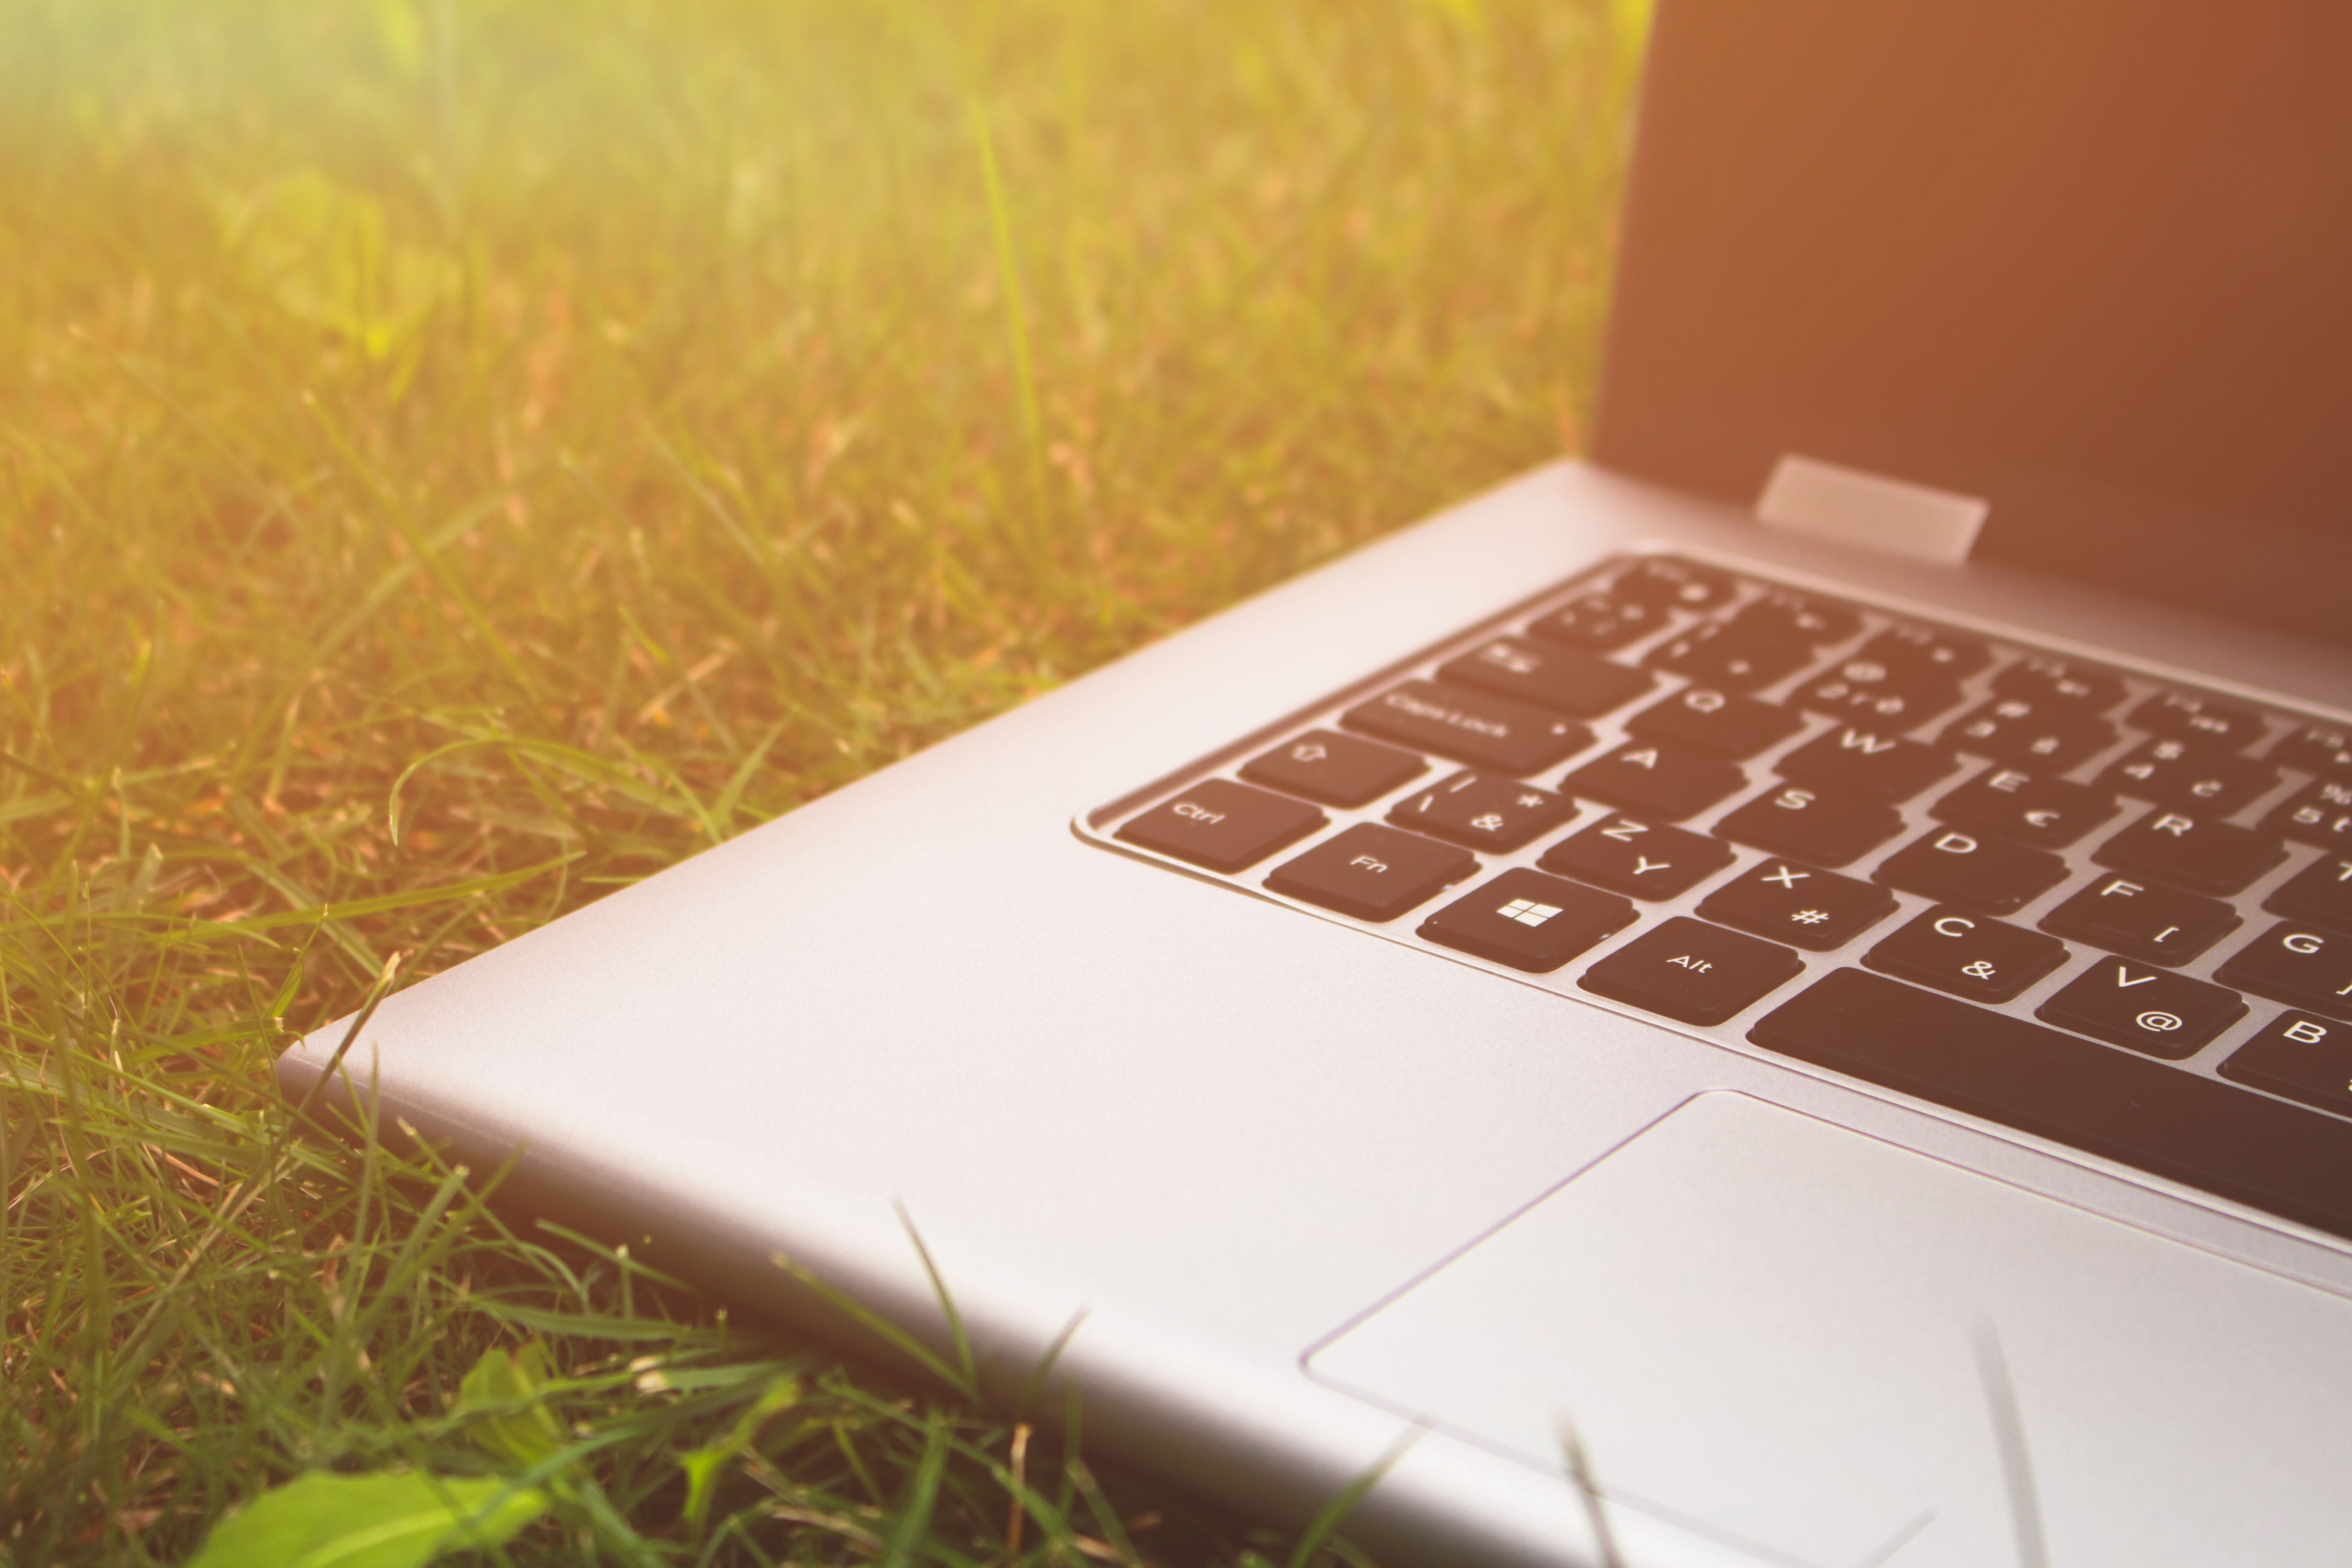 Free stock photo of grass, keyboard, laptop, notebook